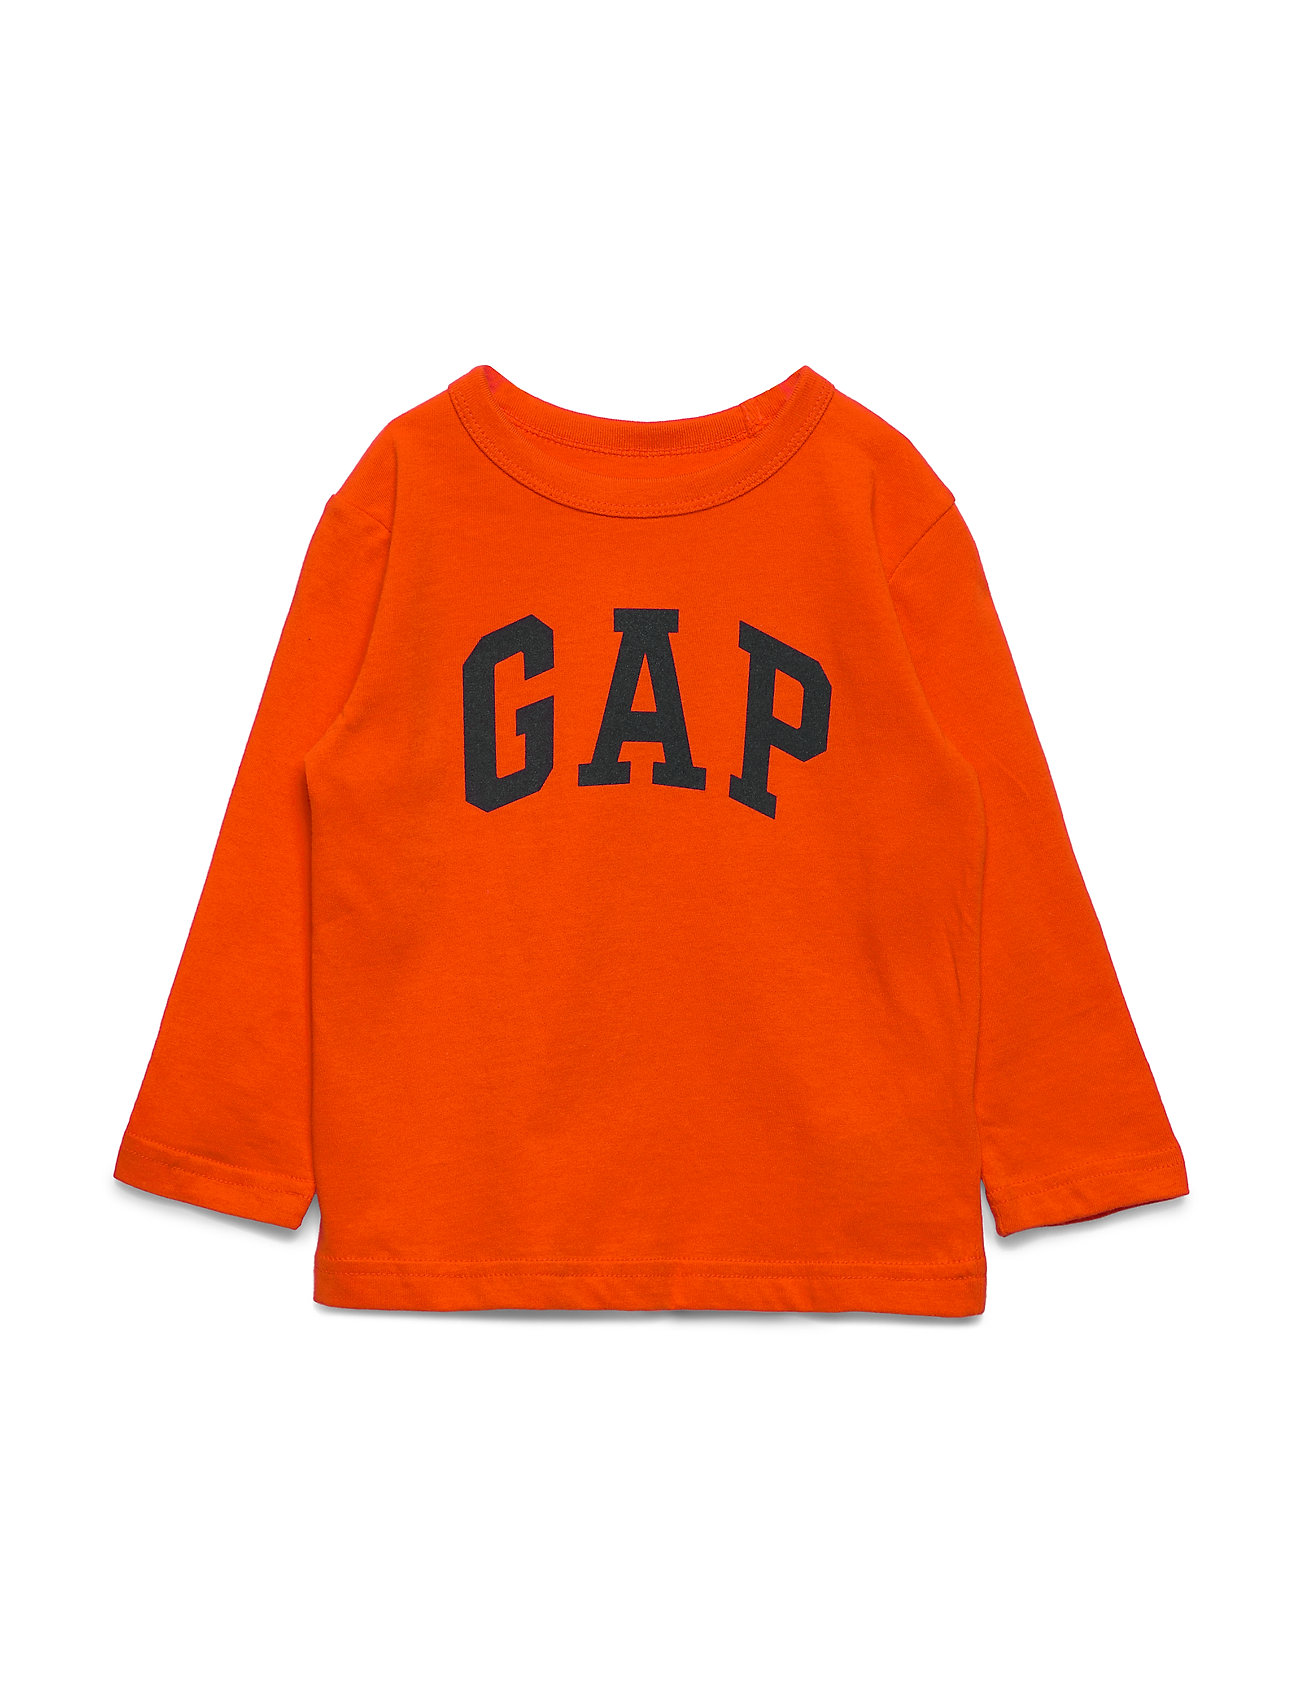 GAP V-PTF LS LOGO T - ORANGE POP